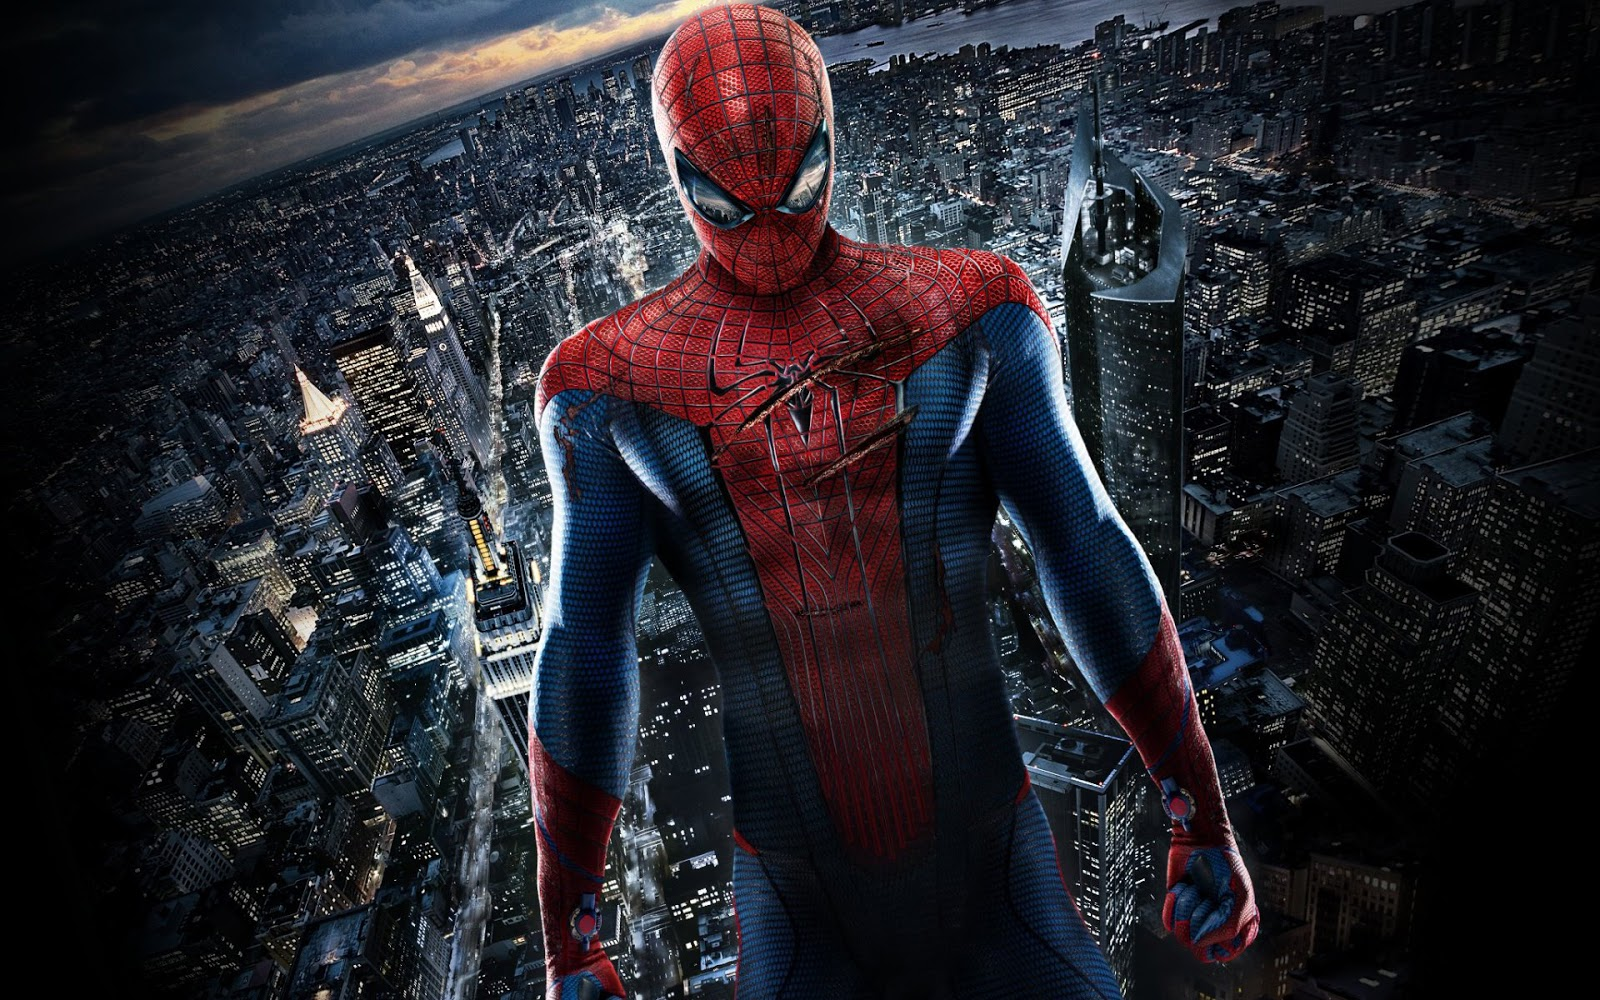 Amazing Spider-Man movie trailer 2014 during Superbowl